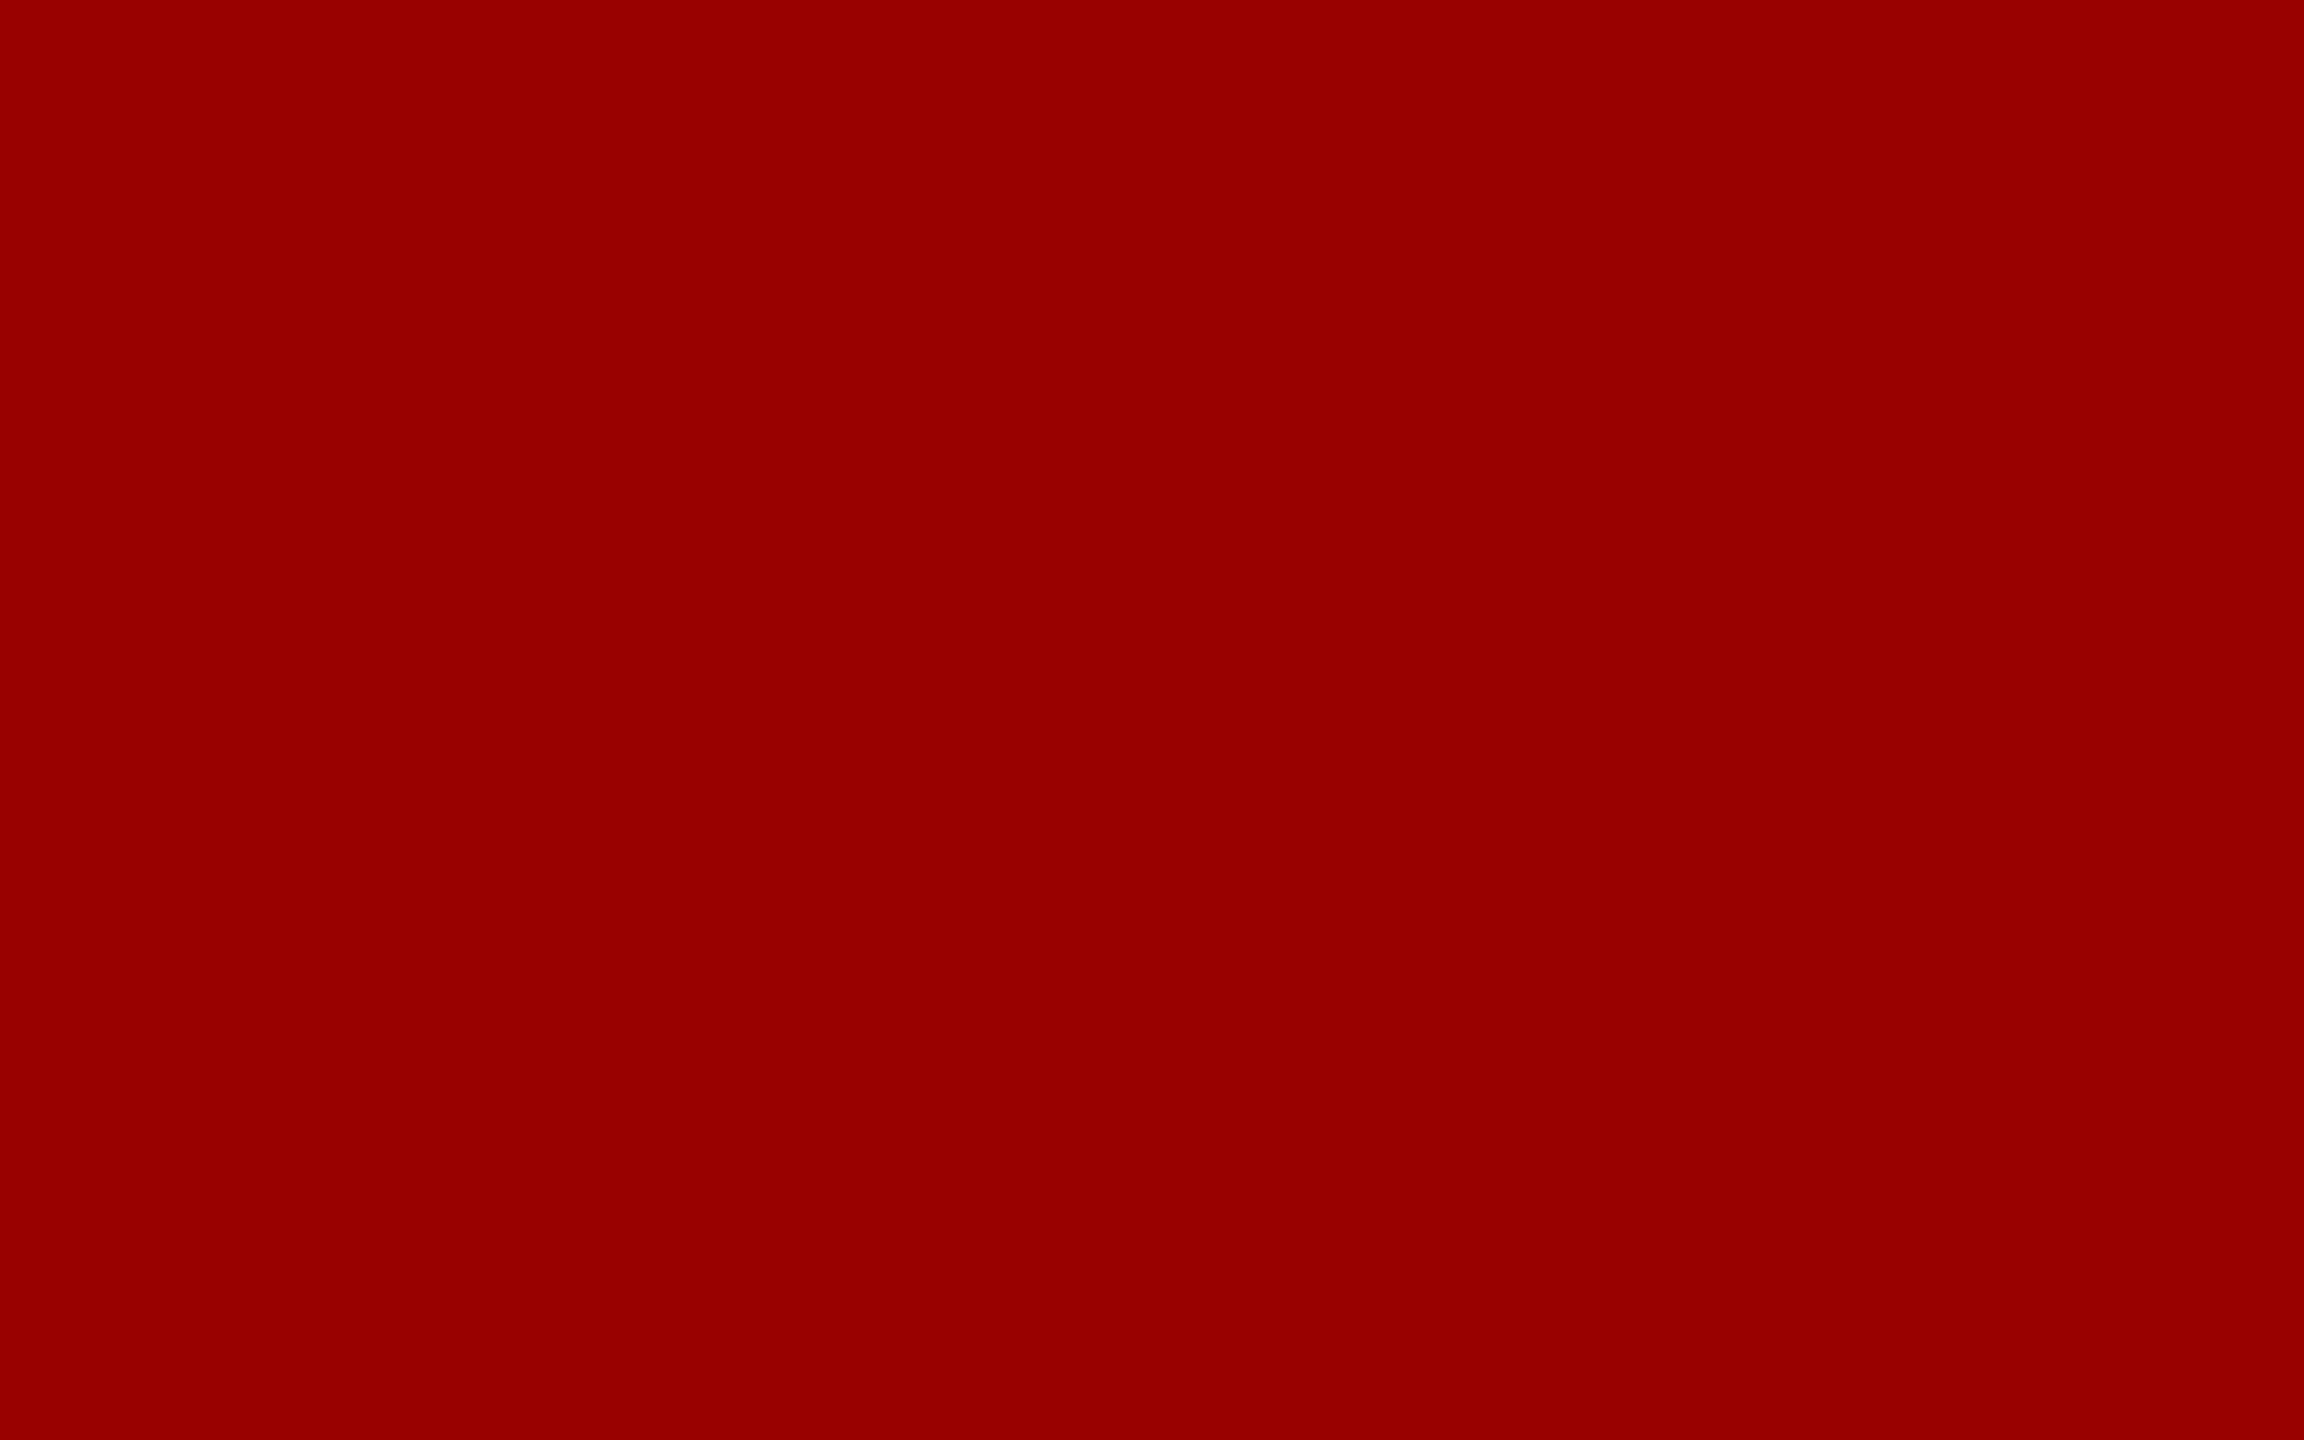 2304x1440 USC Cardinal Solid Color Background